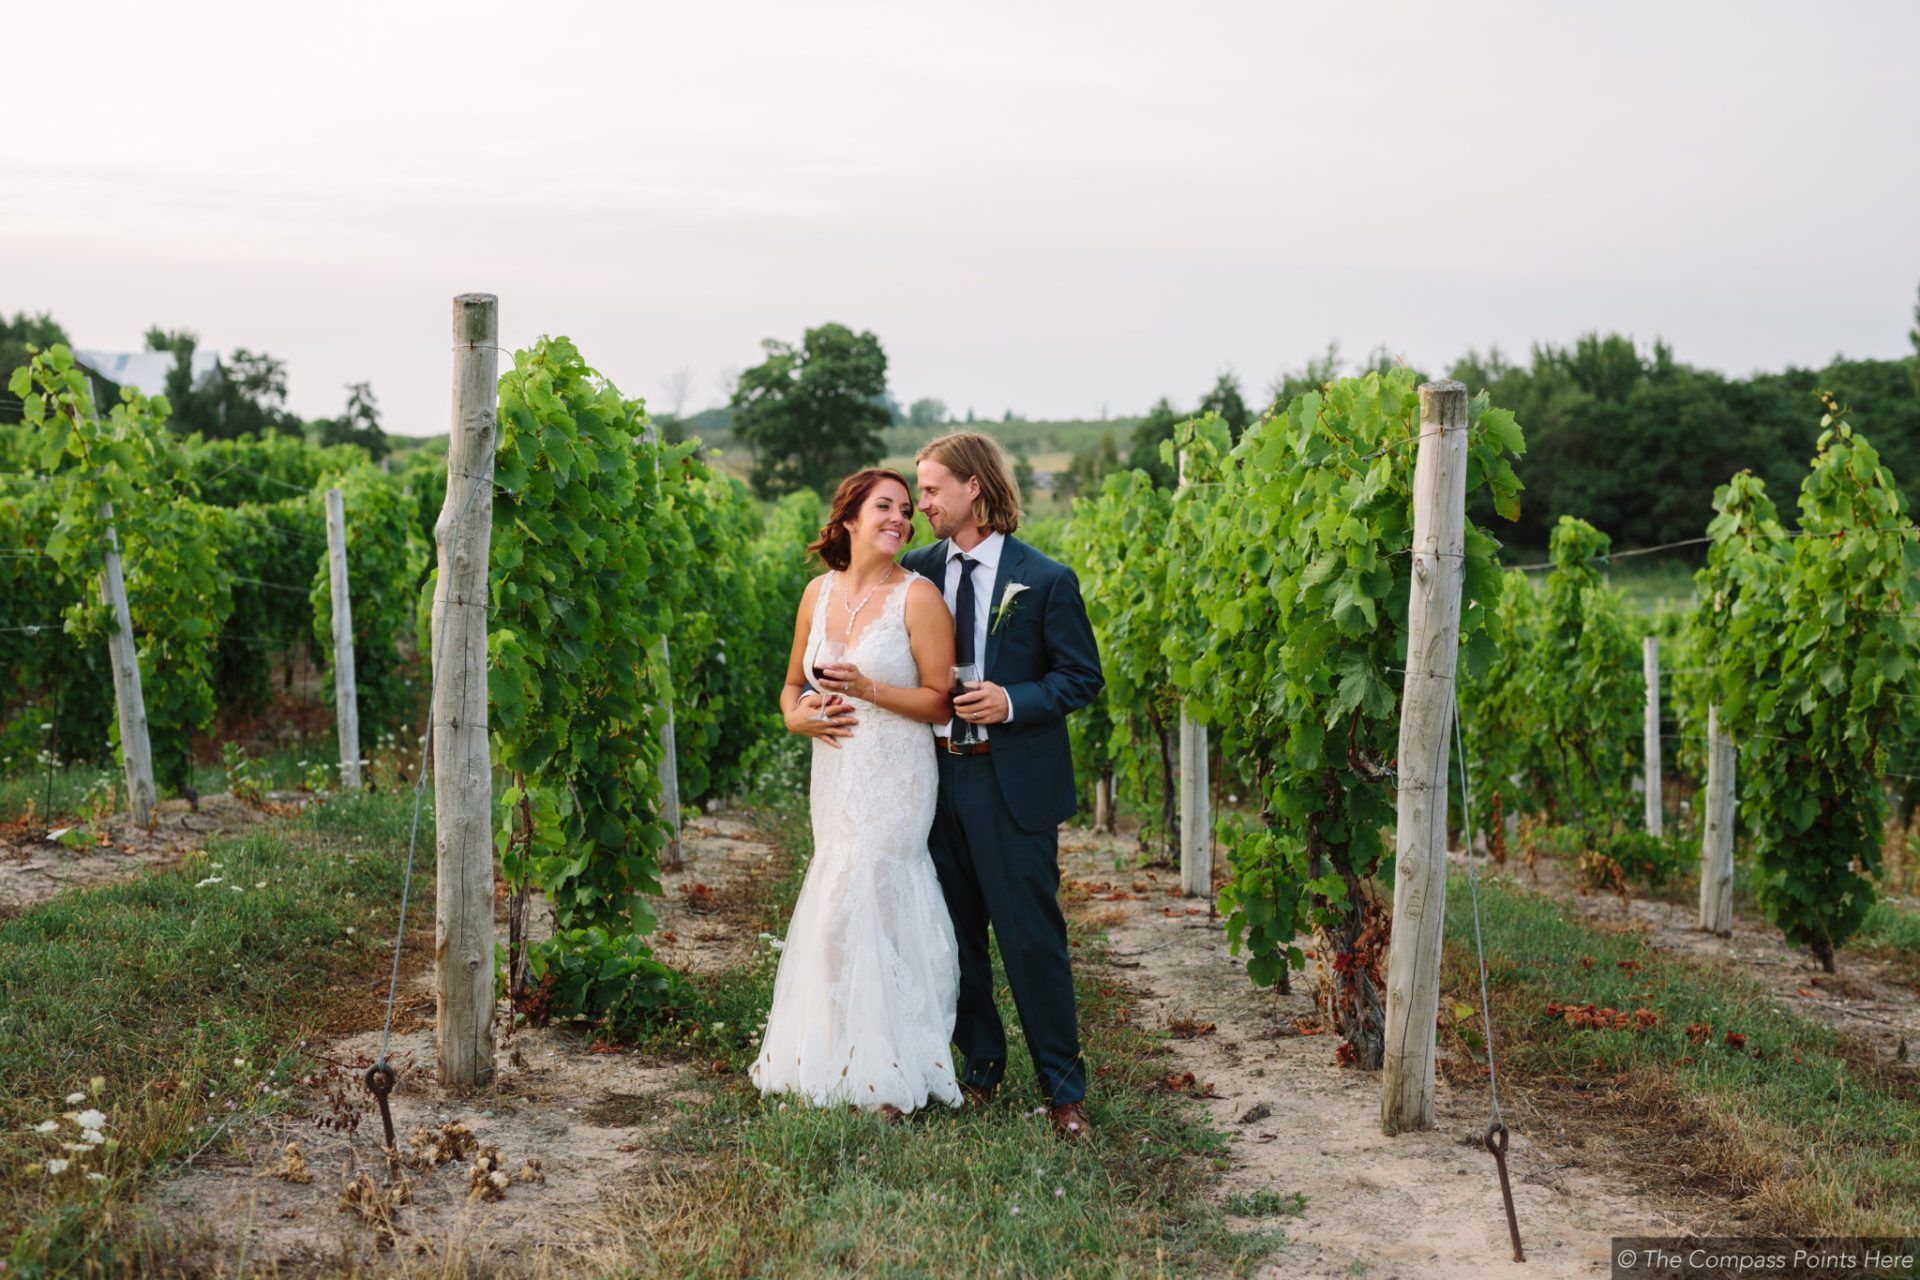 traverse city destination wedding at aurora cellars vineyard